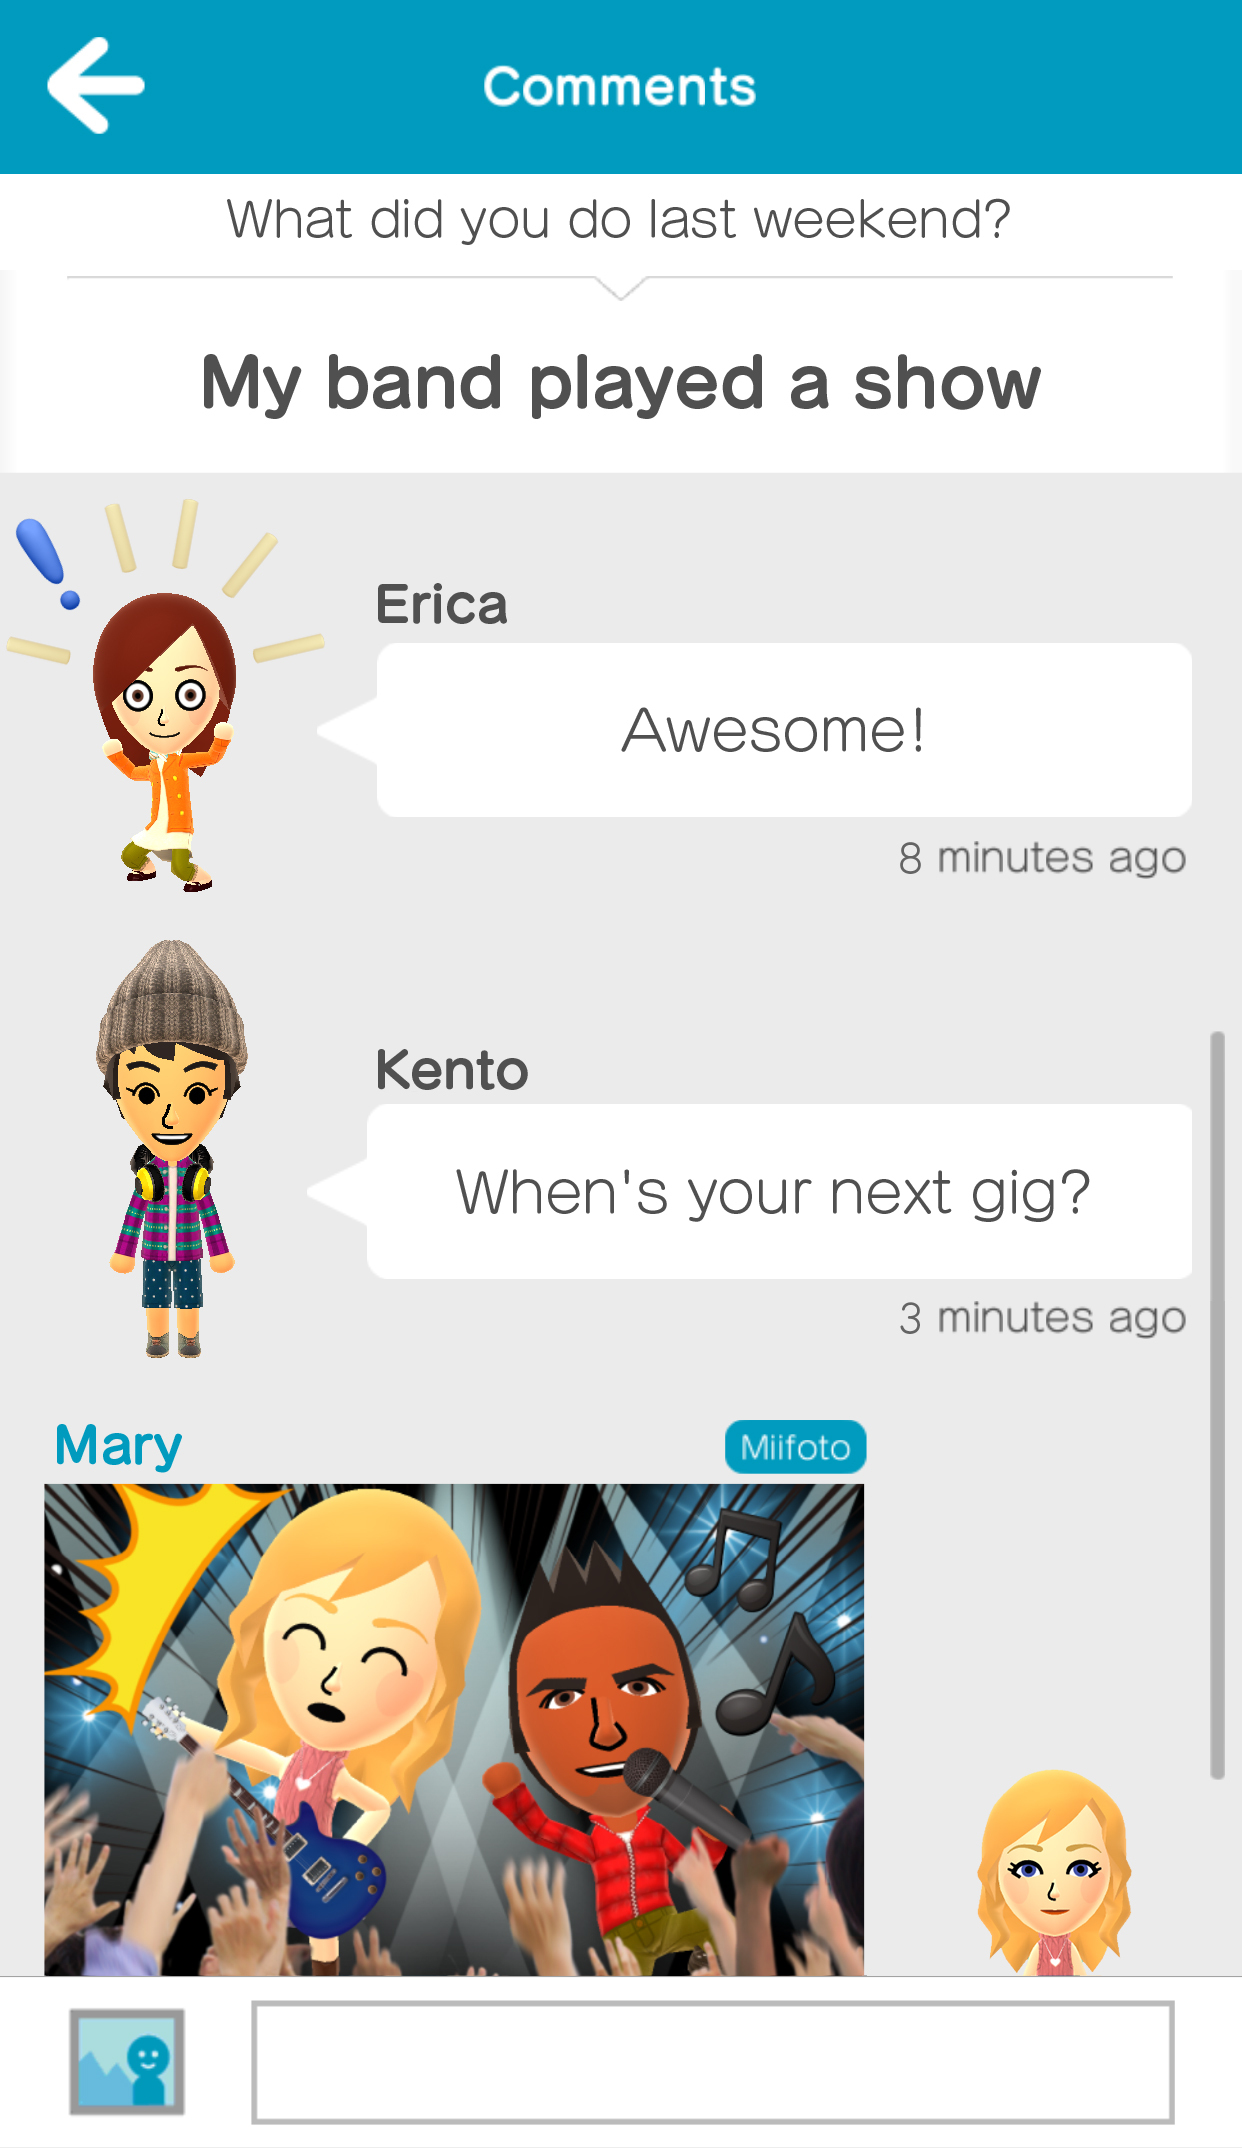 preregistration now open for miitomo nintendo s first smart device